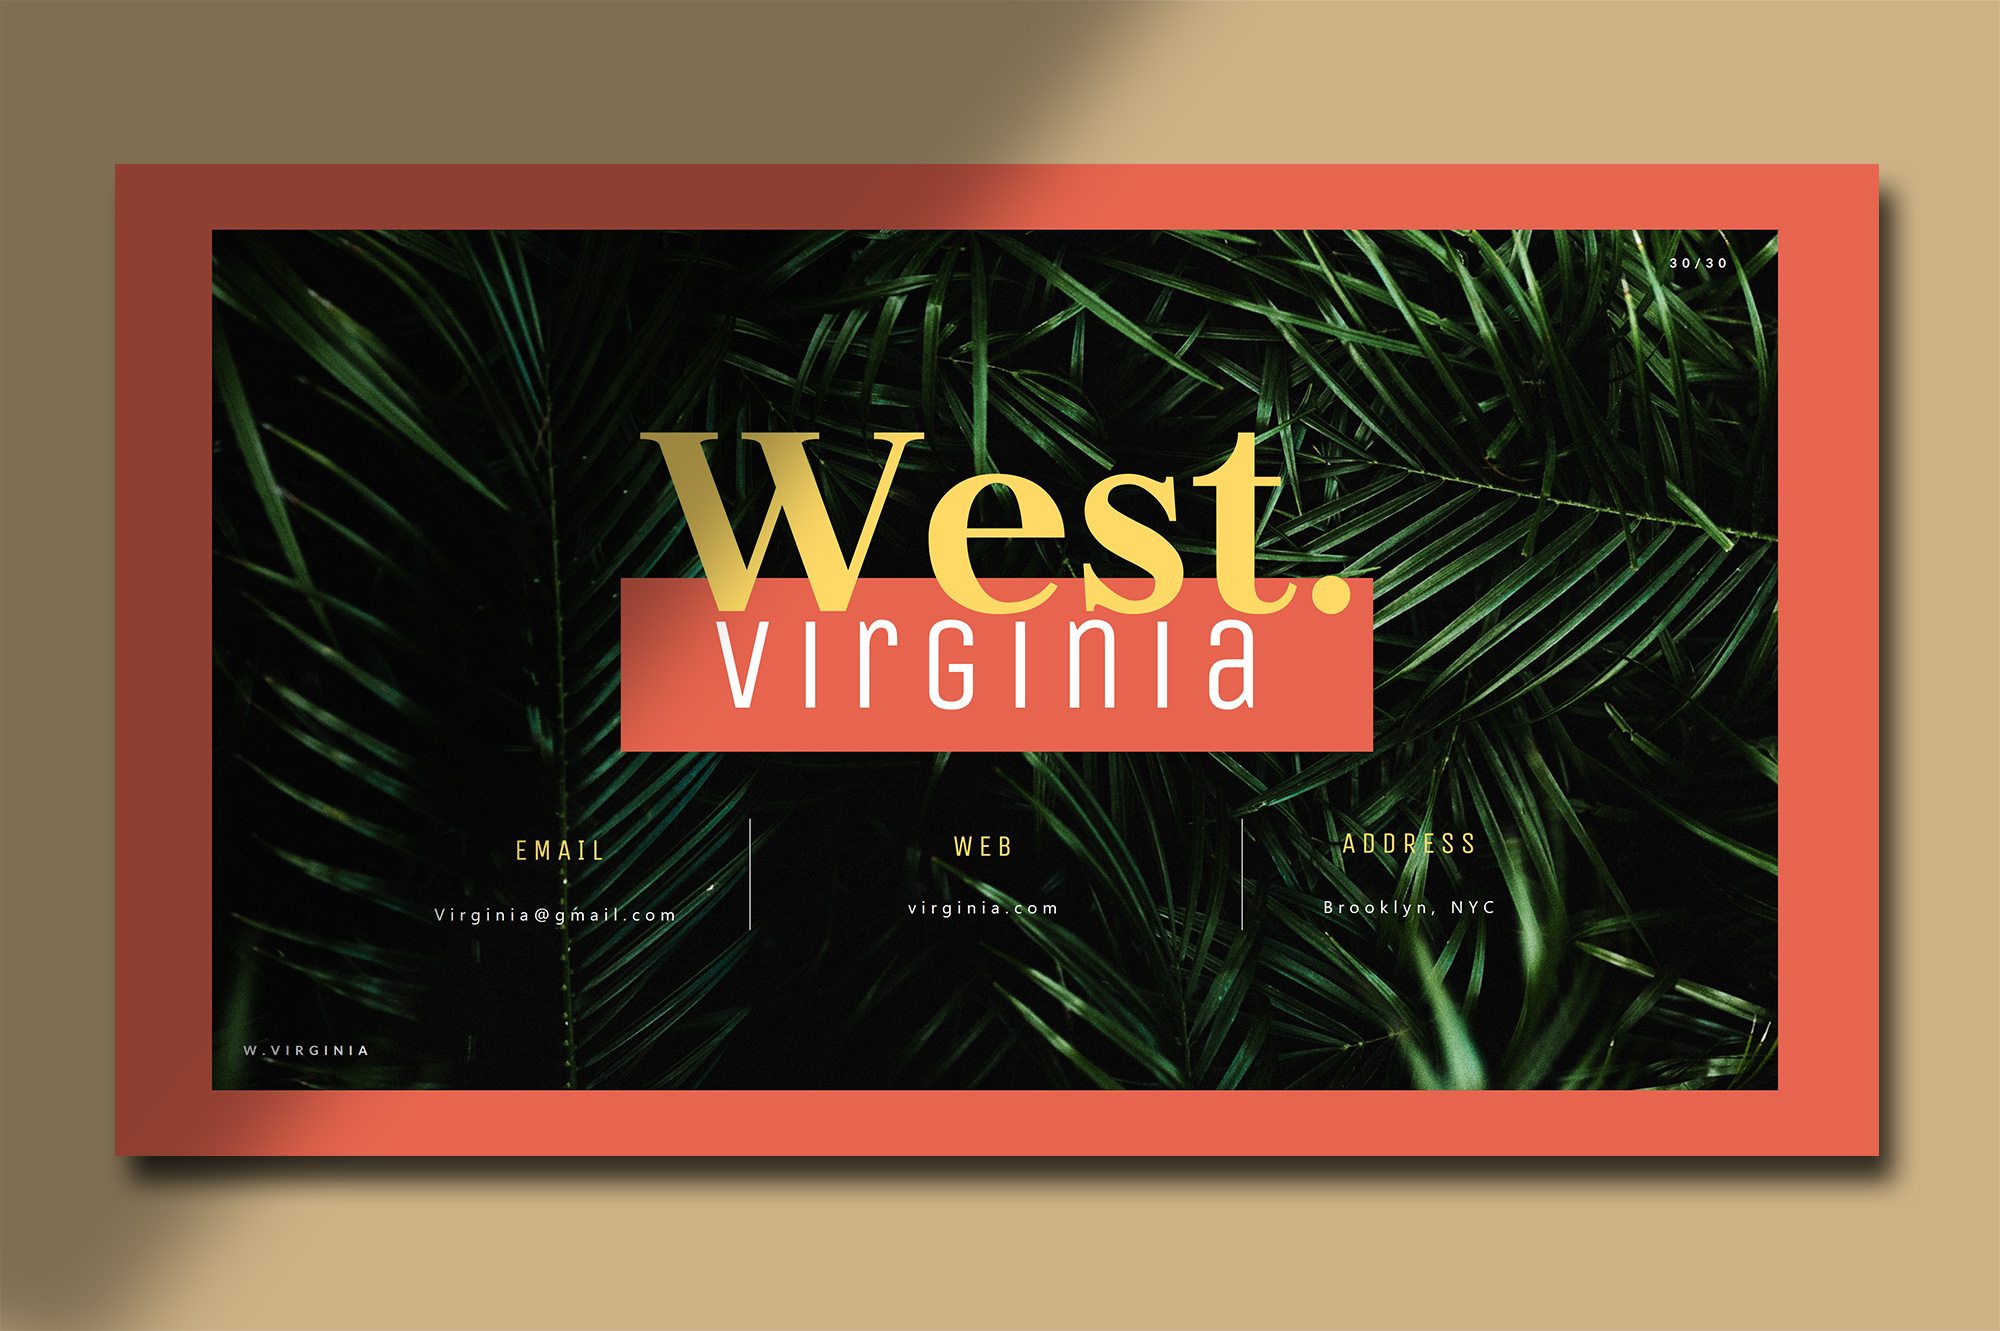 时尚产品营销策划书PPT幻灯片模板 West Virginia Presentation – Powerpoint插图(5)